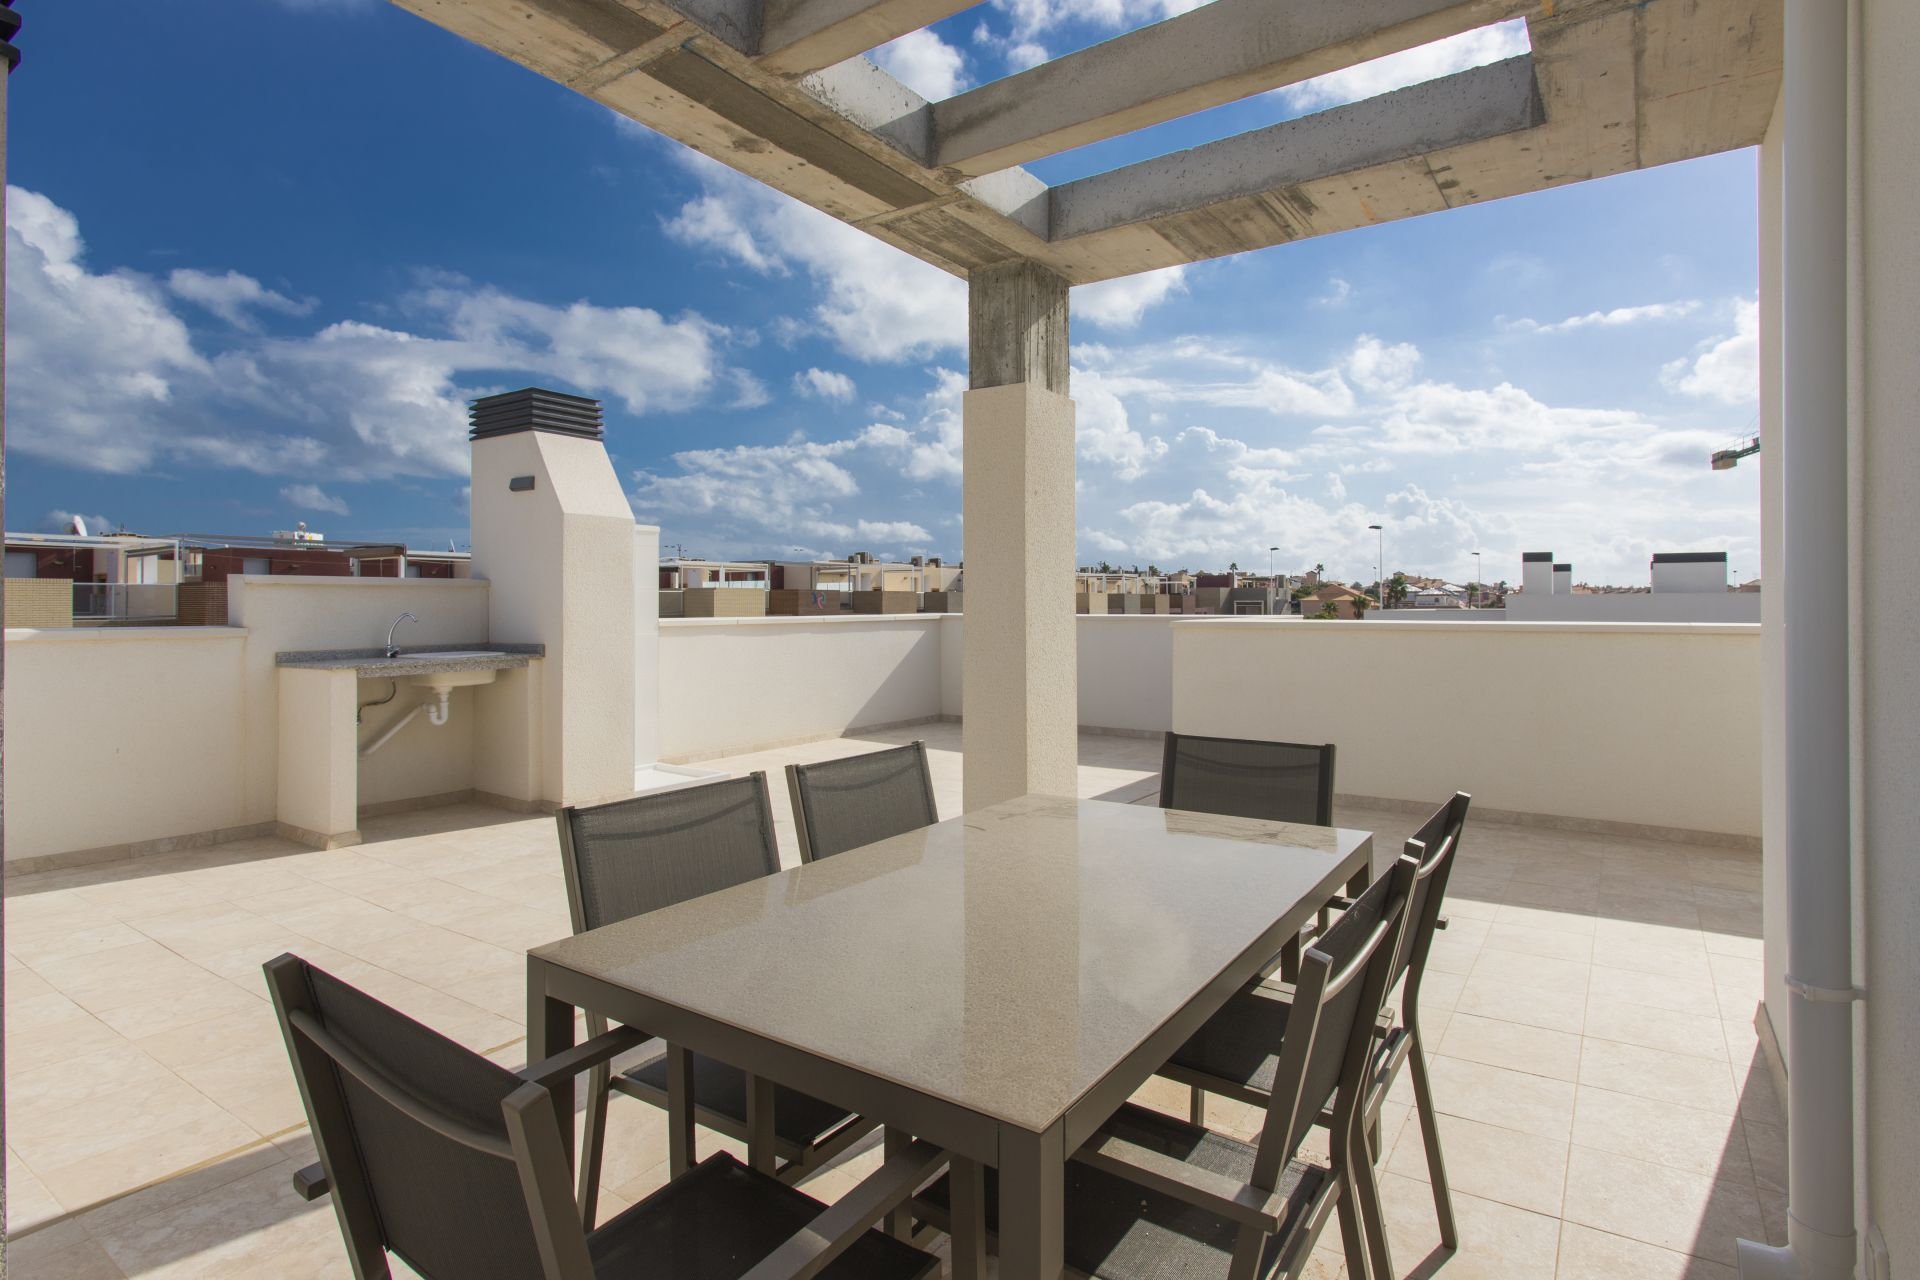 Apartment with 2 bedrooms and 2 bathrooms with solarium, Aguas Nuevas. 10